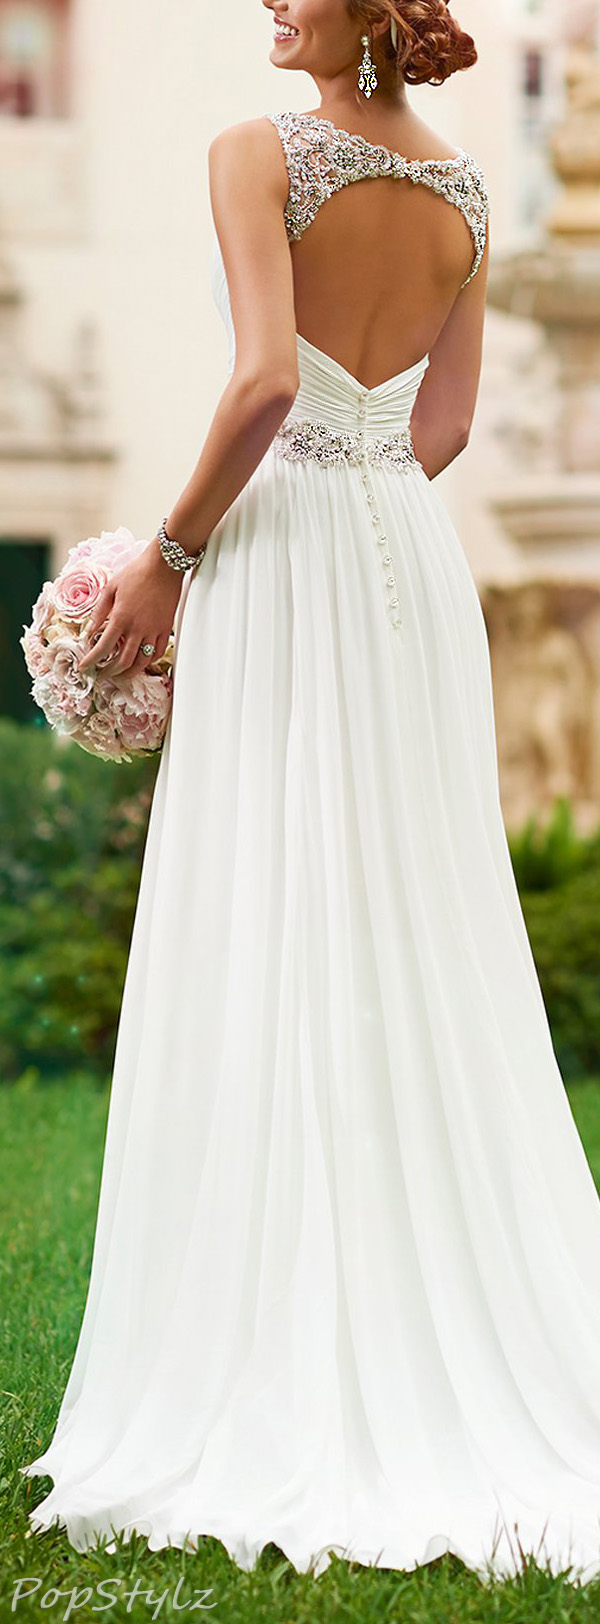 Harshori V-Neck Detailed Shoulder Straps Wedding Gown